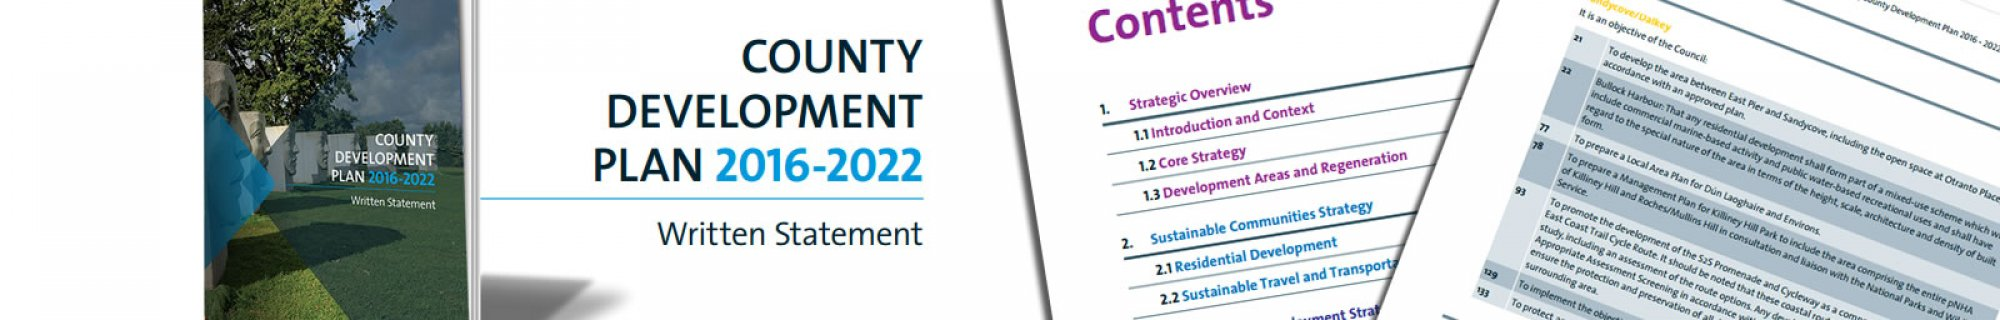 county development plan 2016-22